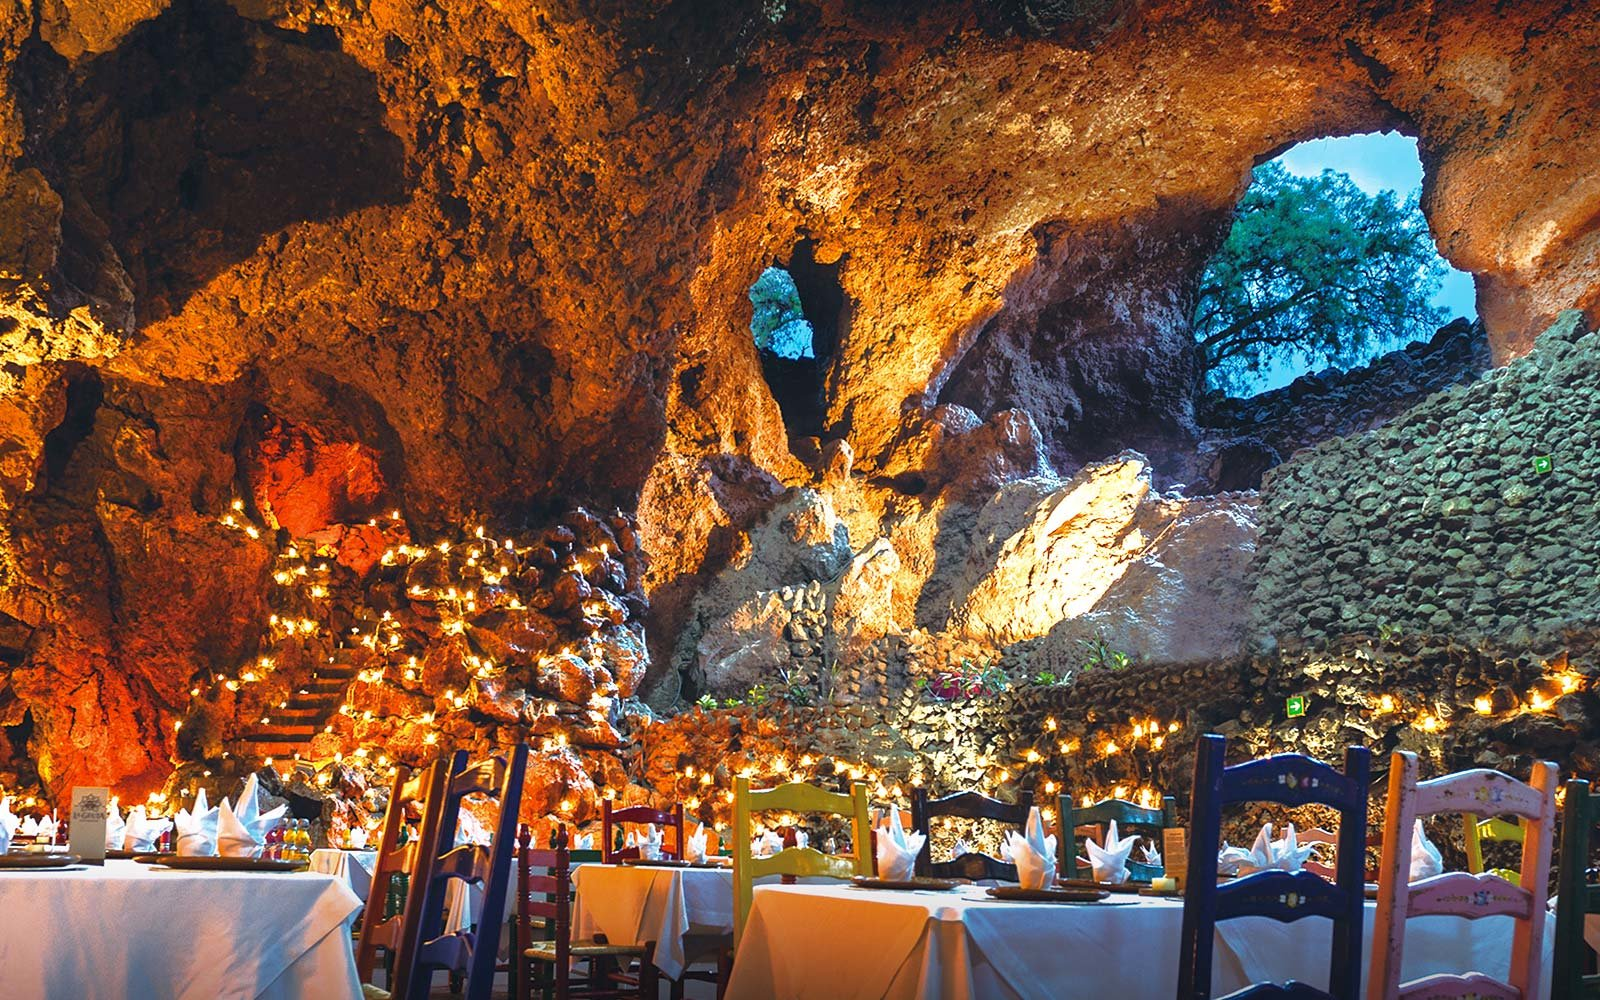 La Gruta Restaurant east of the Teotihuacan pyramids Mexico City Mexico Central America Cave